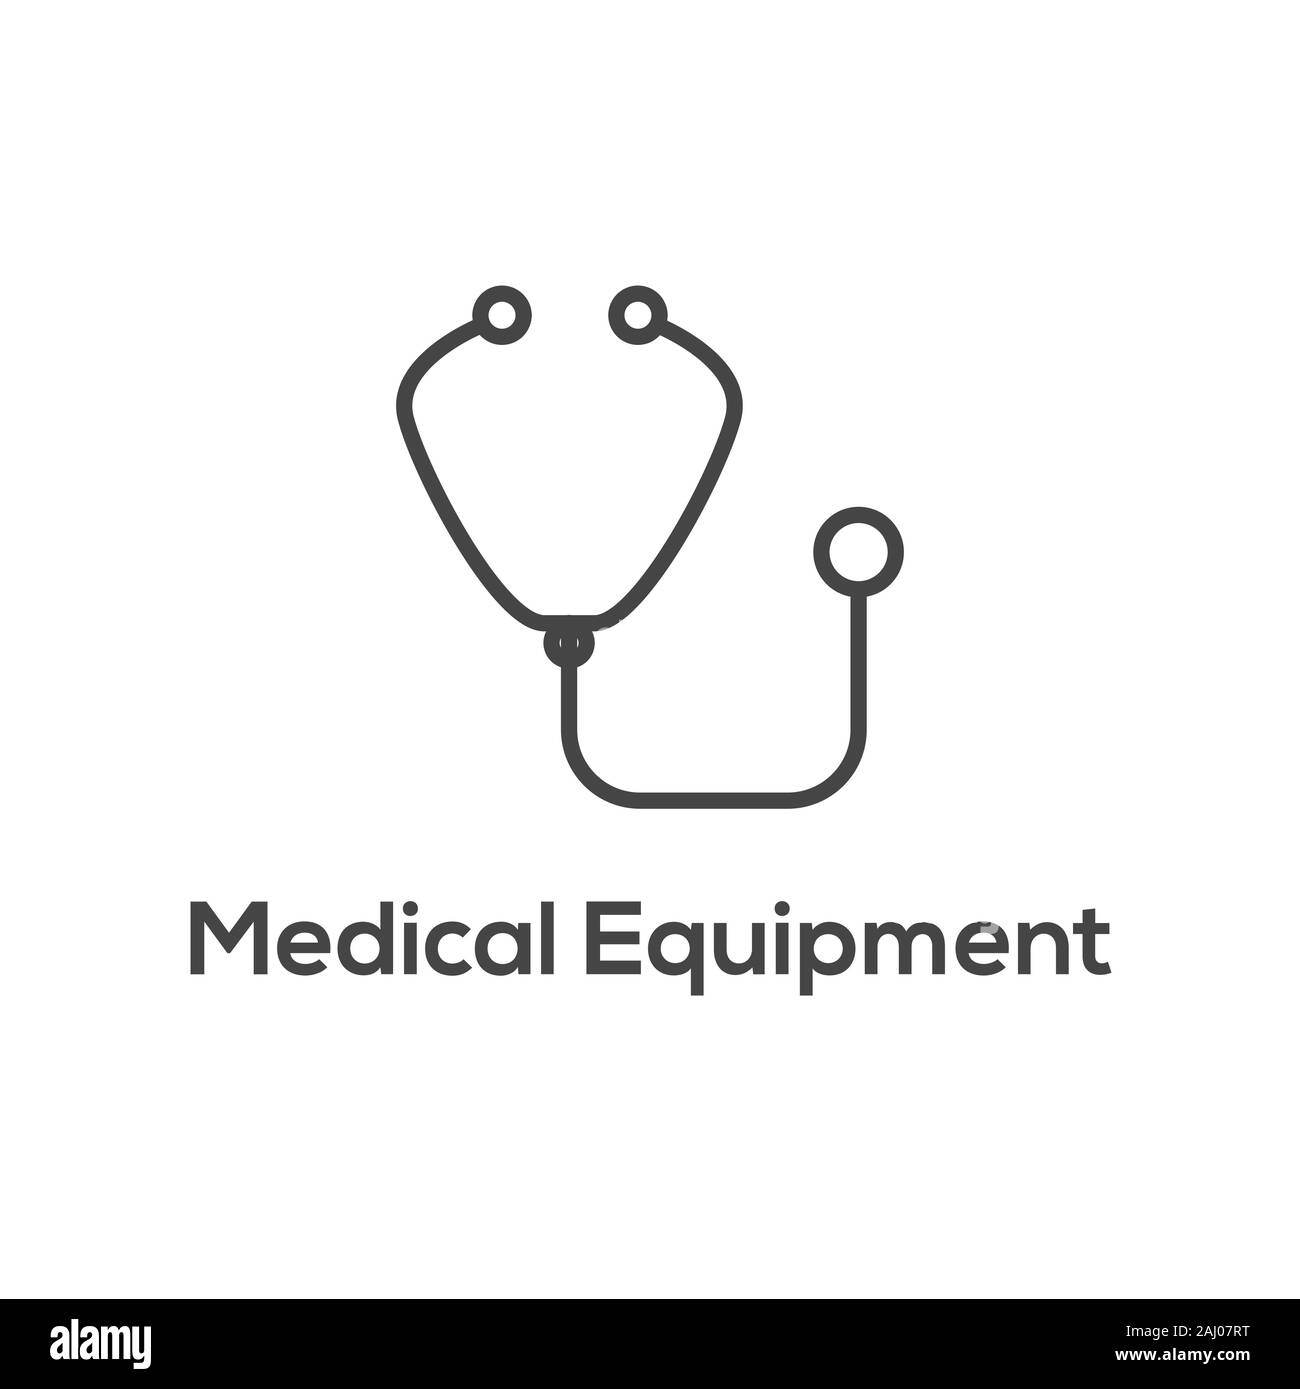 Medical Care Icon - health related symbolism and image Stock Vector